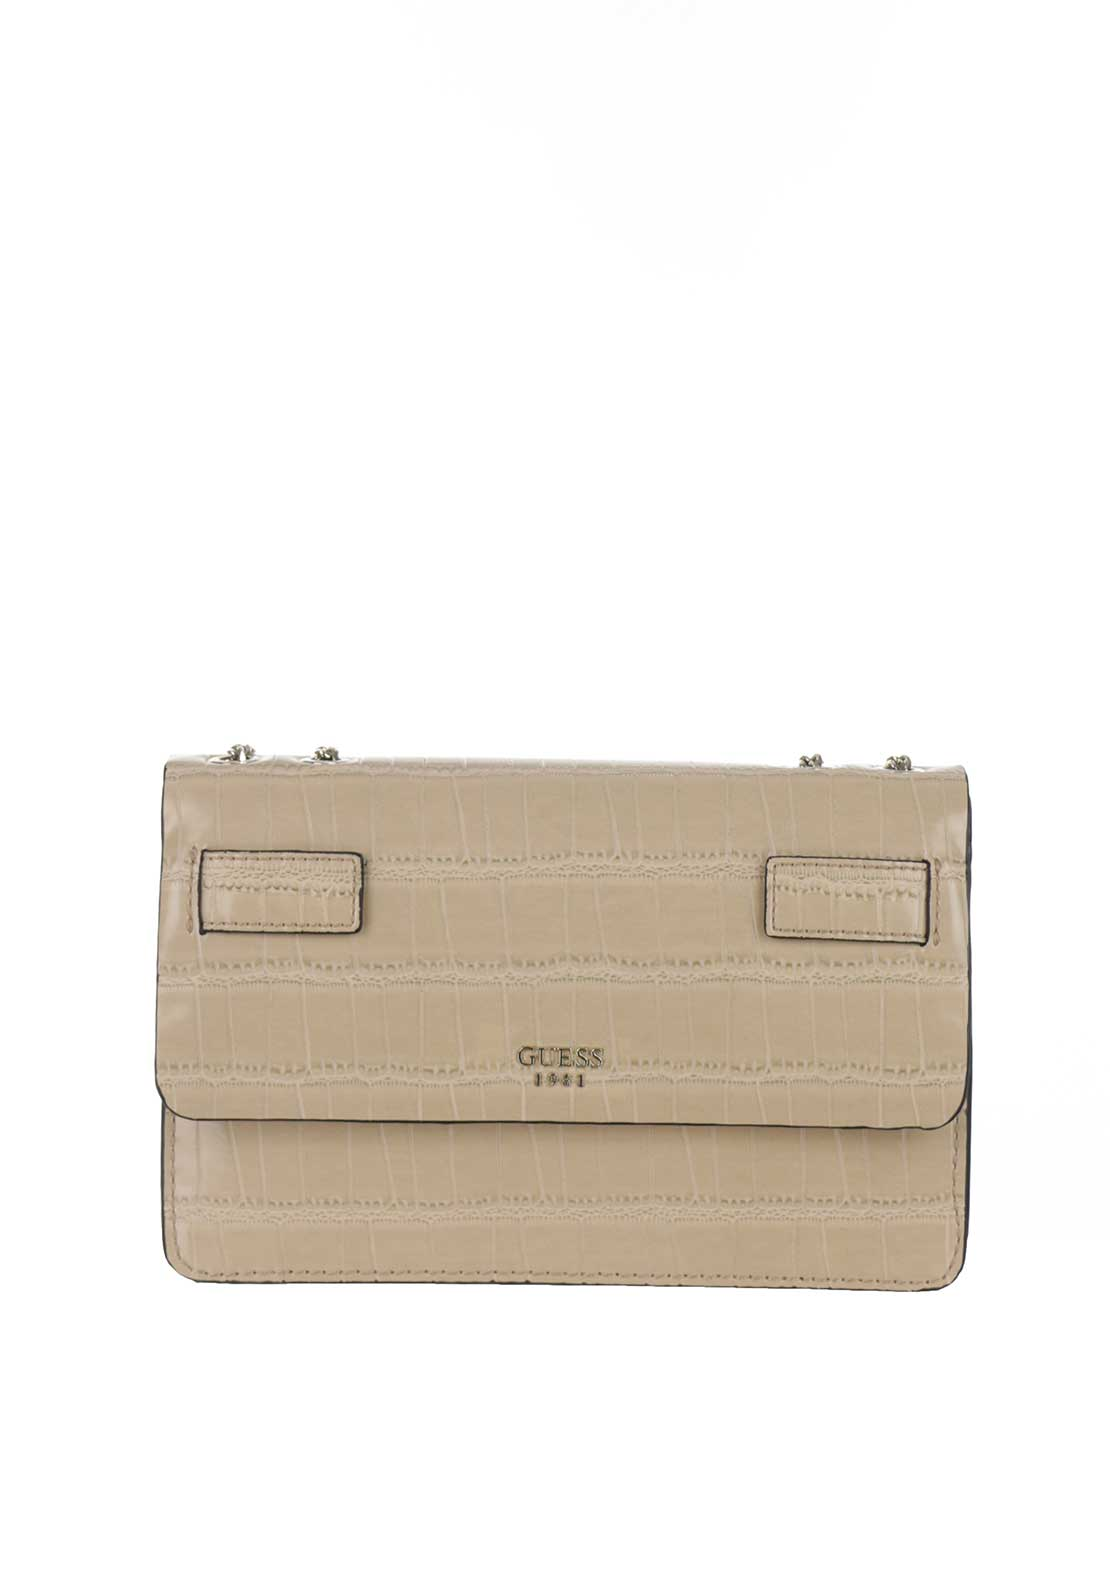 Guess Cate Croc Print Crossbody Bag, Nut Beige